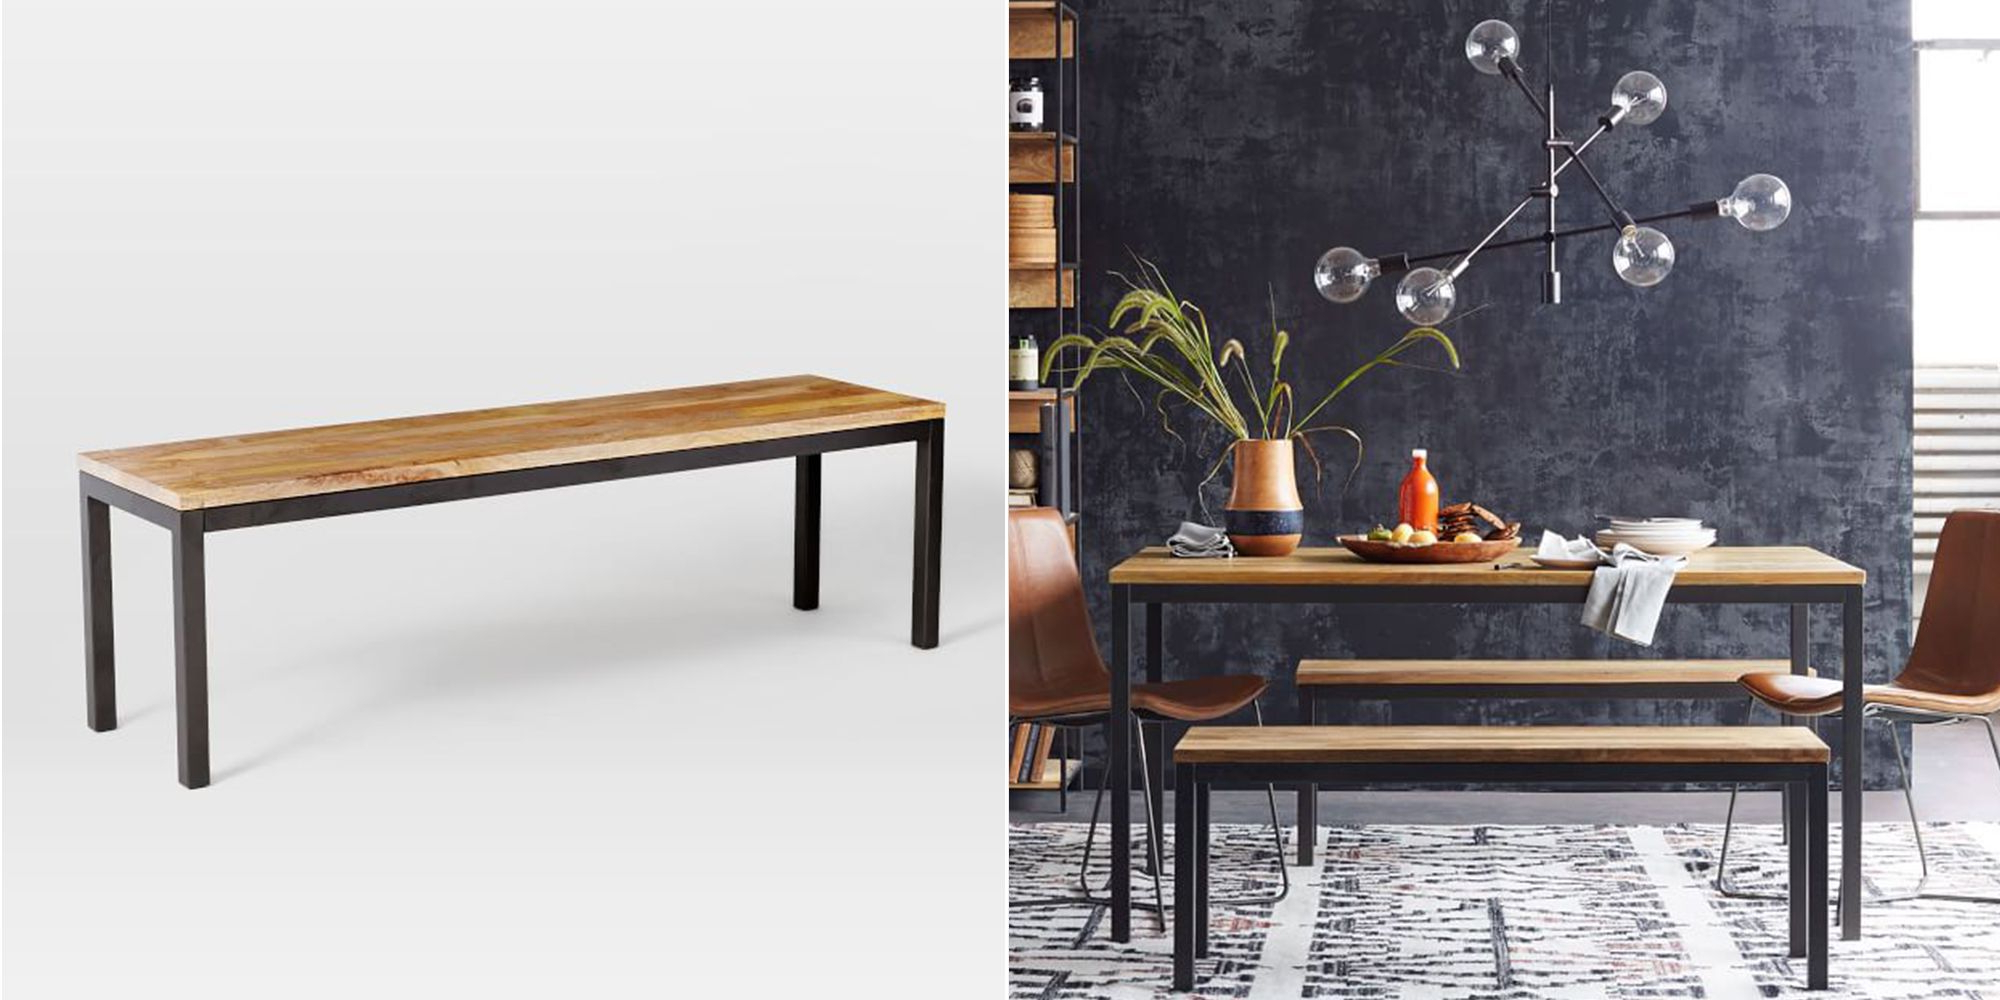 10 Best Dining Benches 2018 – Wooden Dining Room Benches Inside Preferred Rustic Country 8 Seating Casual Dining Tables (View 19 of 30)